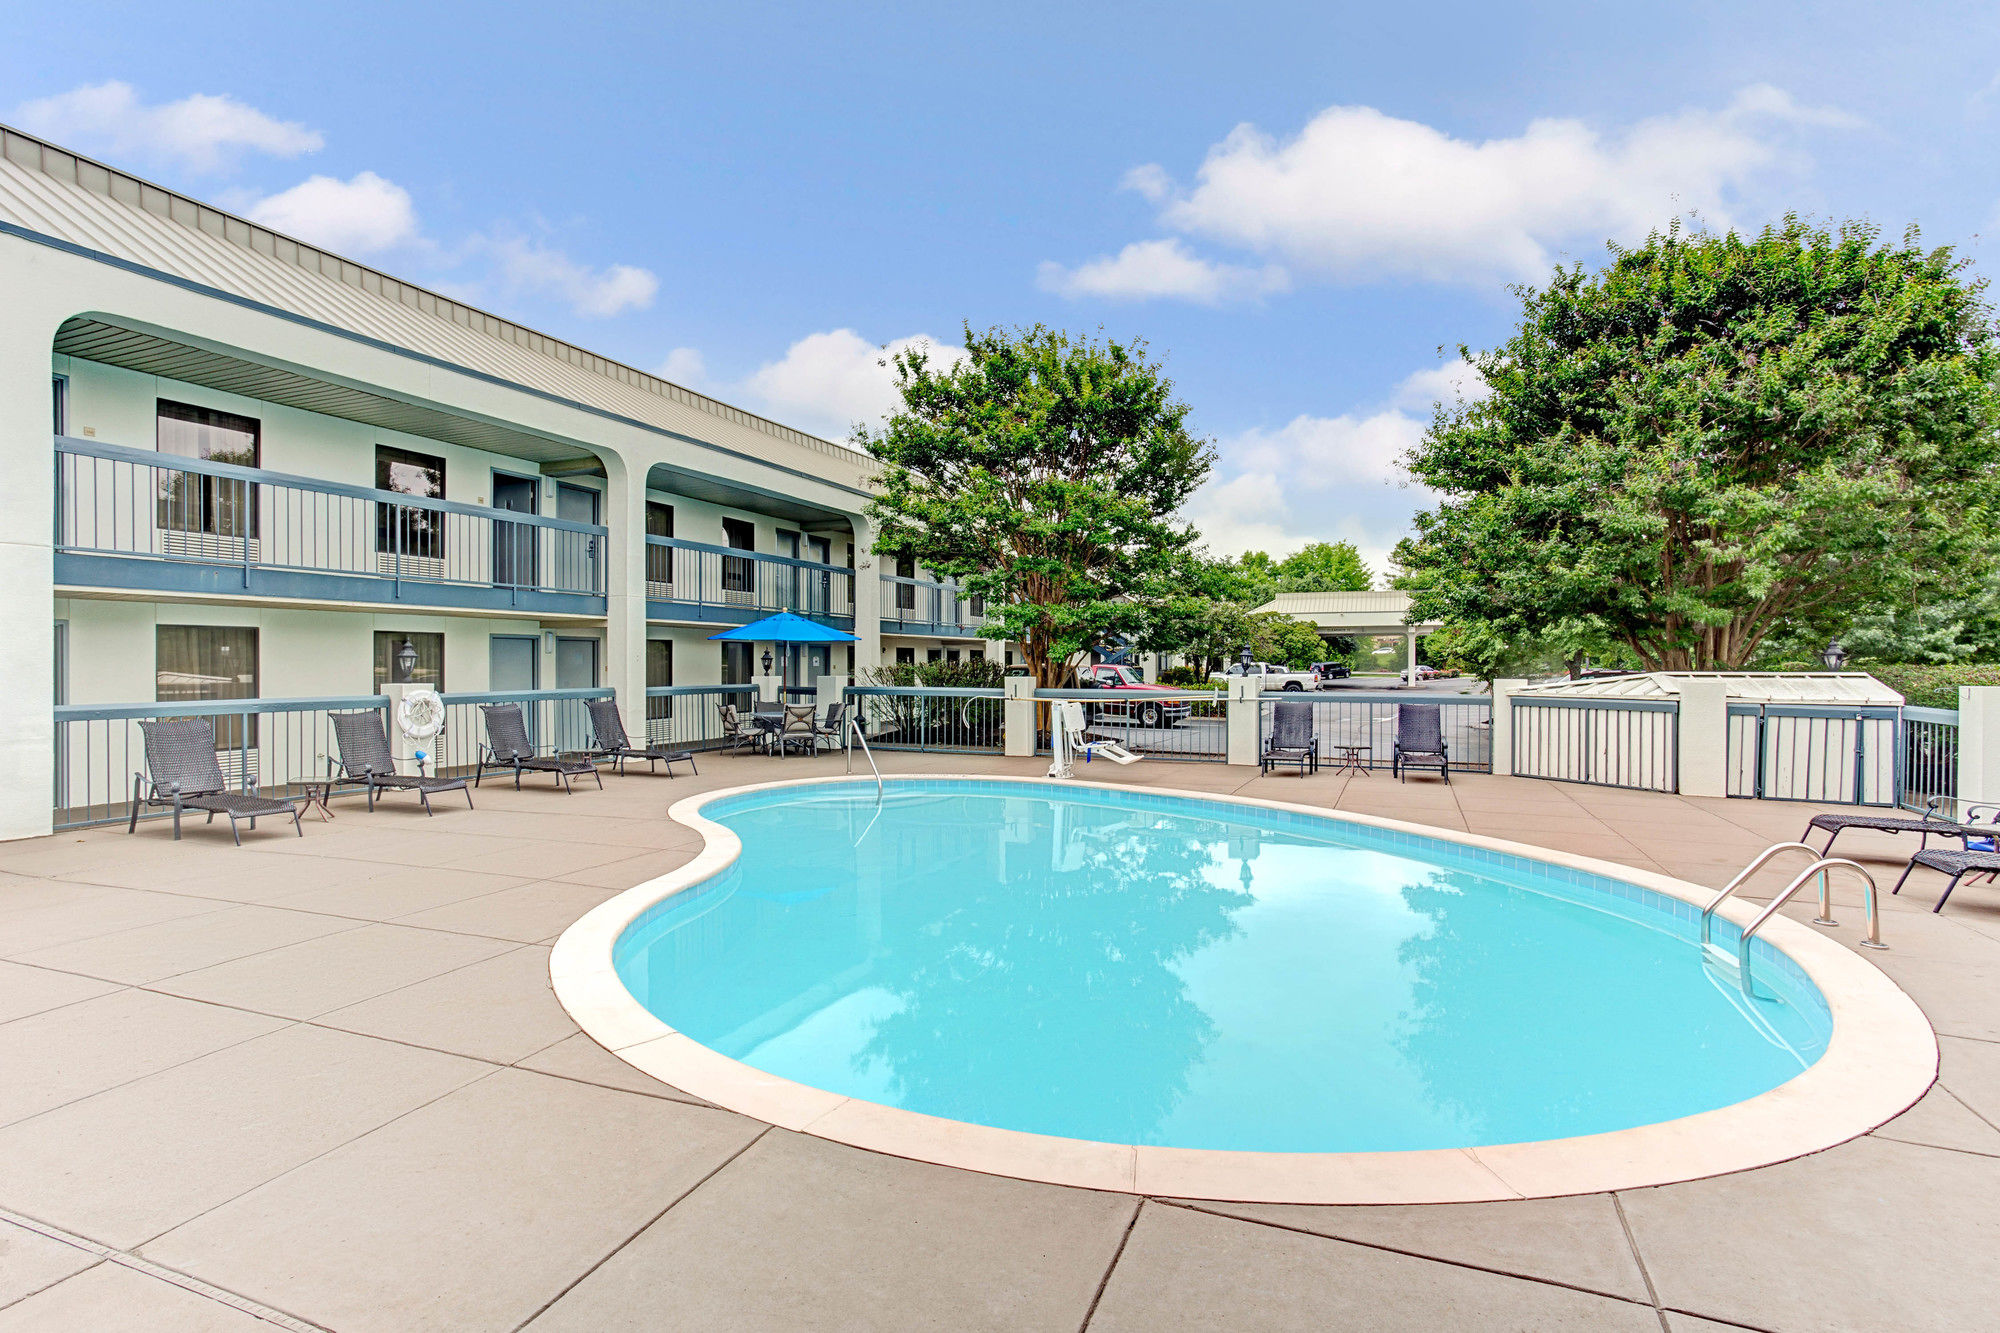 Baymont Inn and Suites Murfreesboro in Murfreesboro, TN